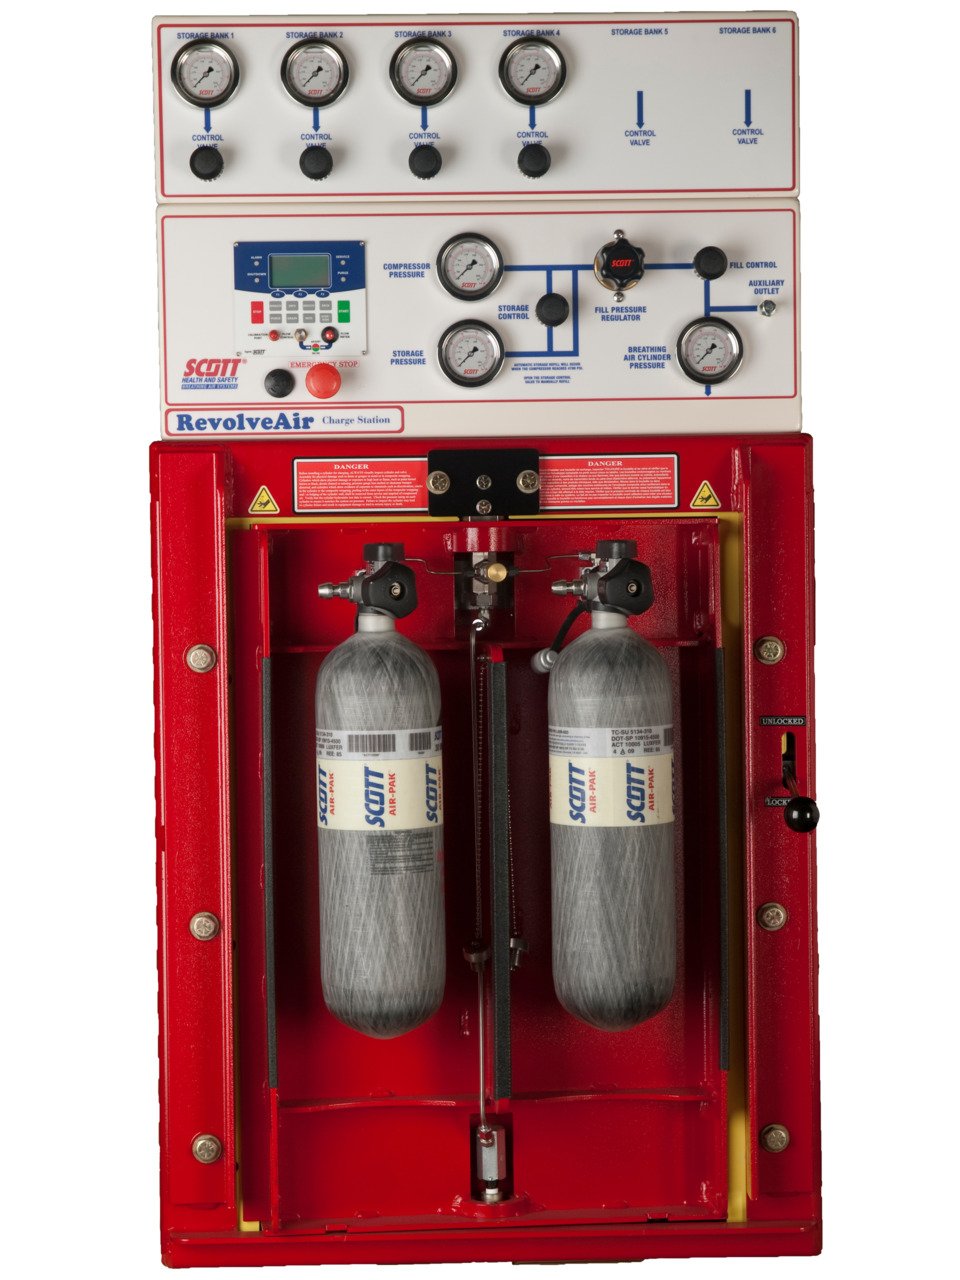 Bauer Compressors Selecting On-board Equipment For Fire Apparatus - Fire